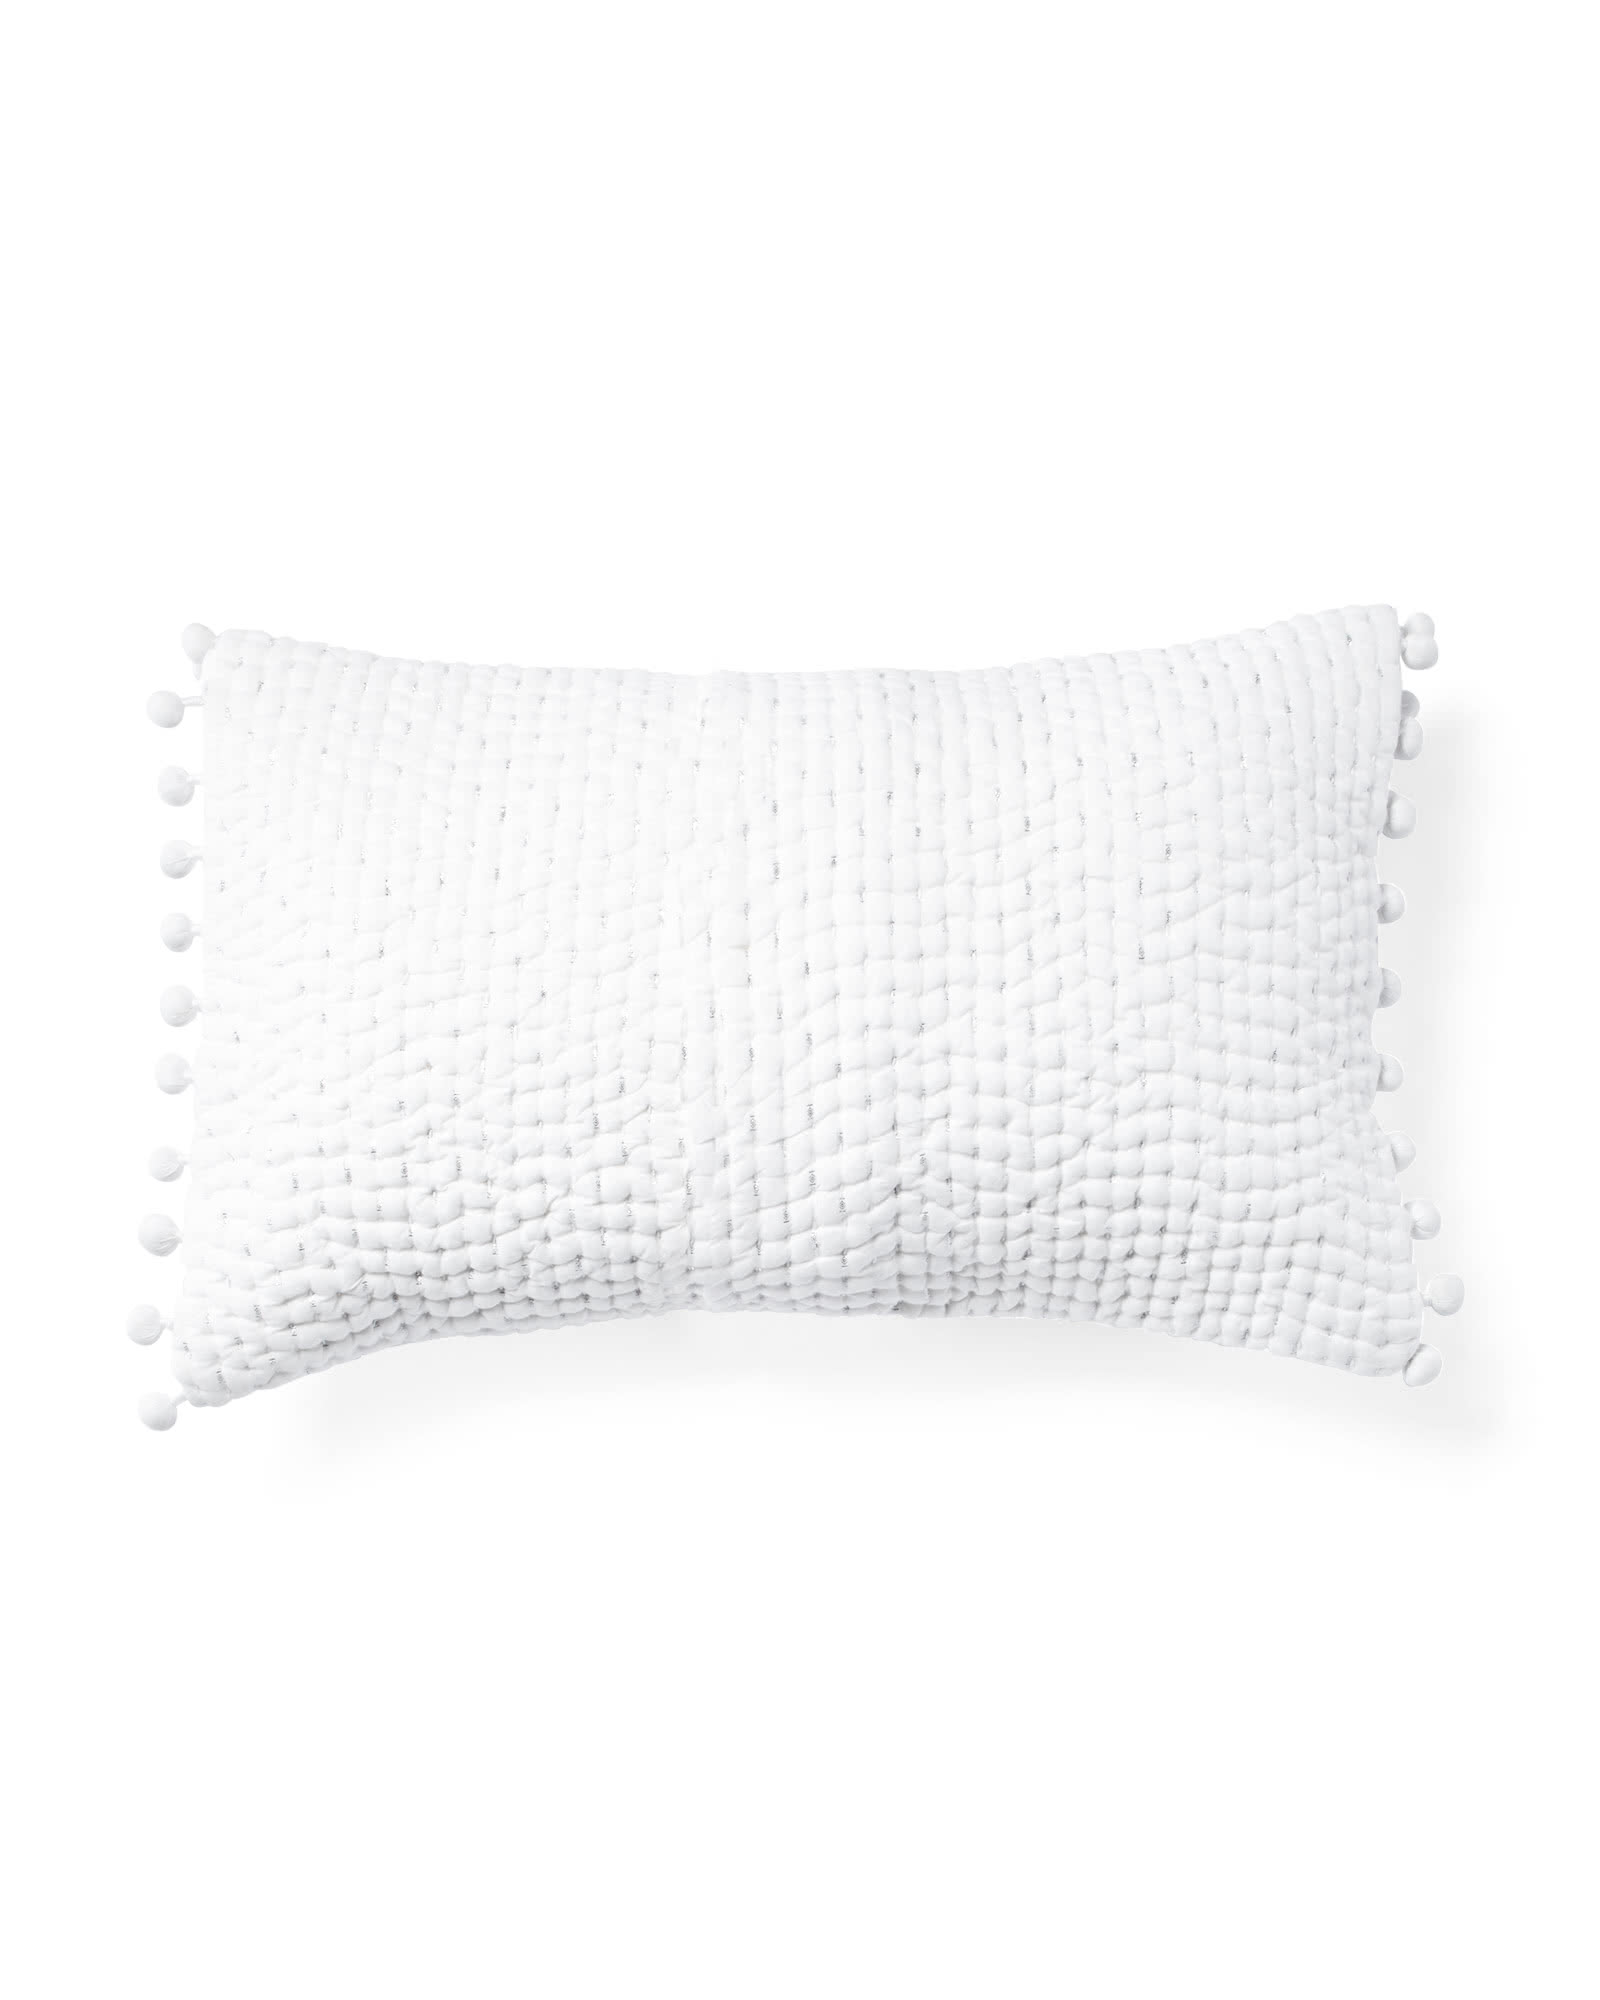 Metallic Pickstitch Lumbar Pillow Cover